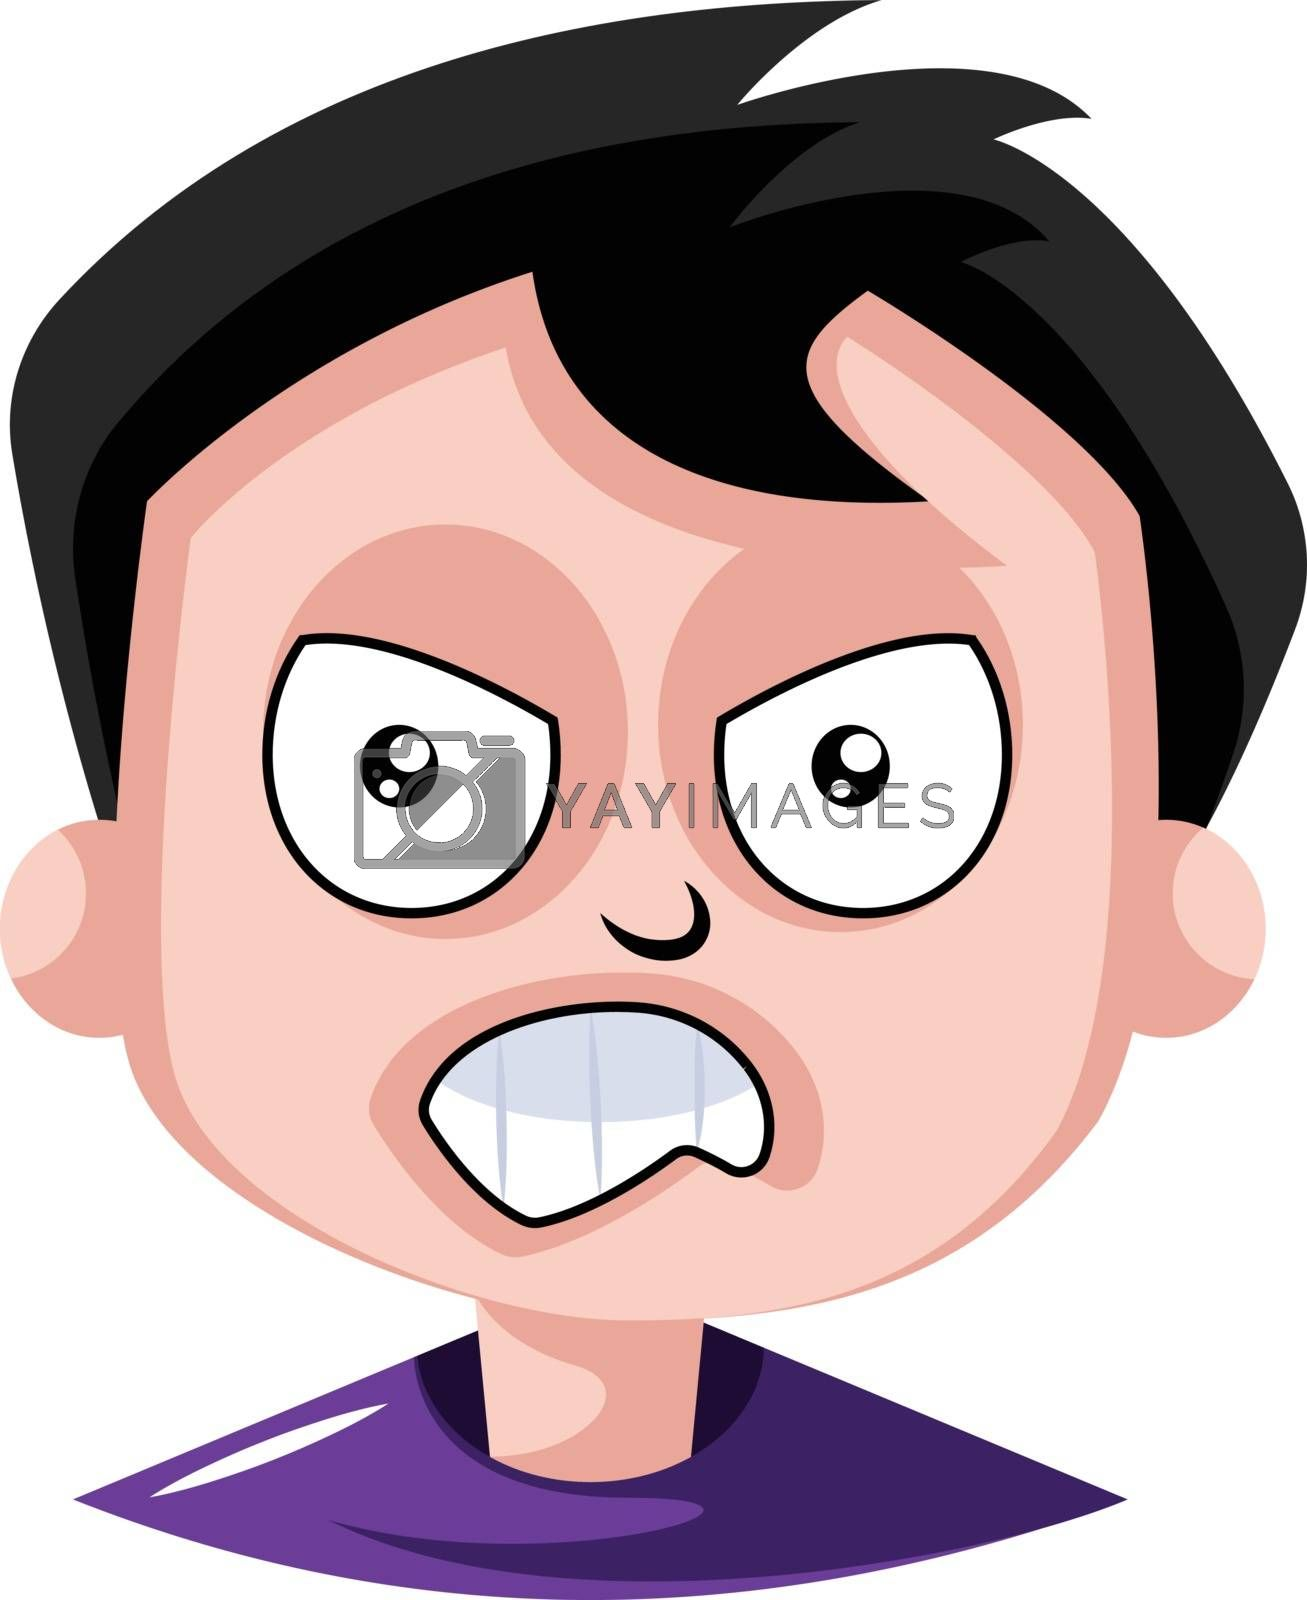 Royalty free image of Man is very frustrated with this situation illustration vector o by Morphart